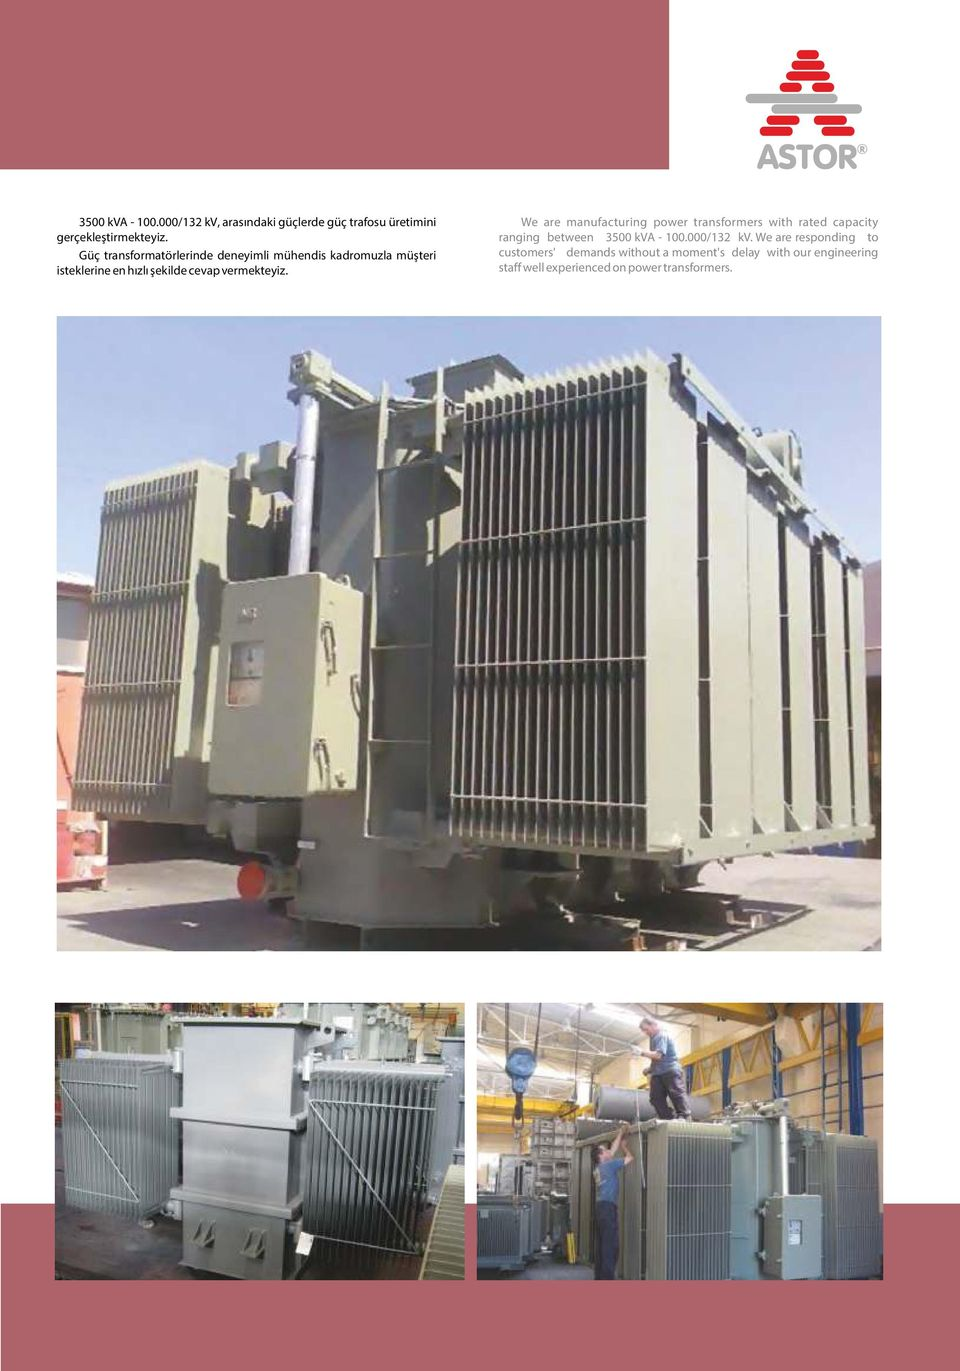 vermekteyiz. We are manufacturing power transformers with rated capacity ranging between 3500 kva - 100.